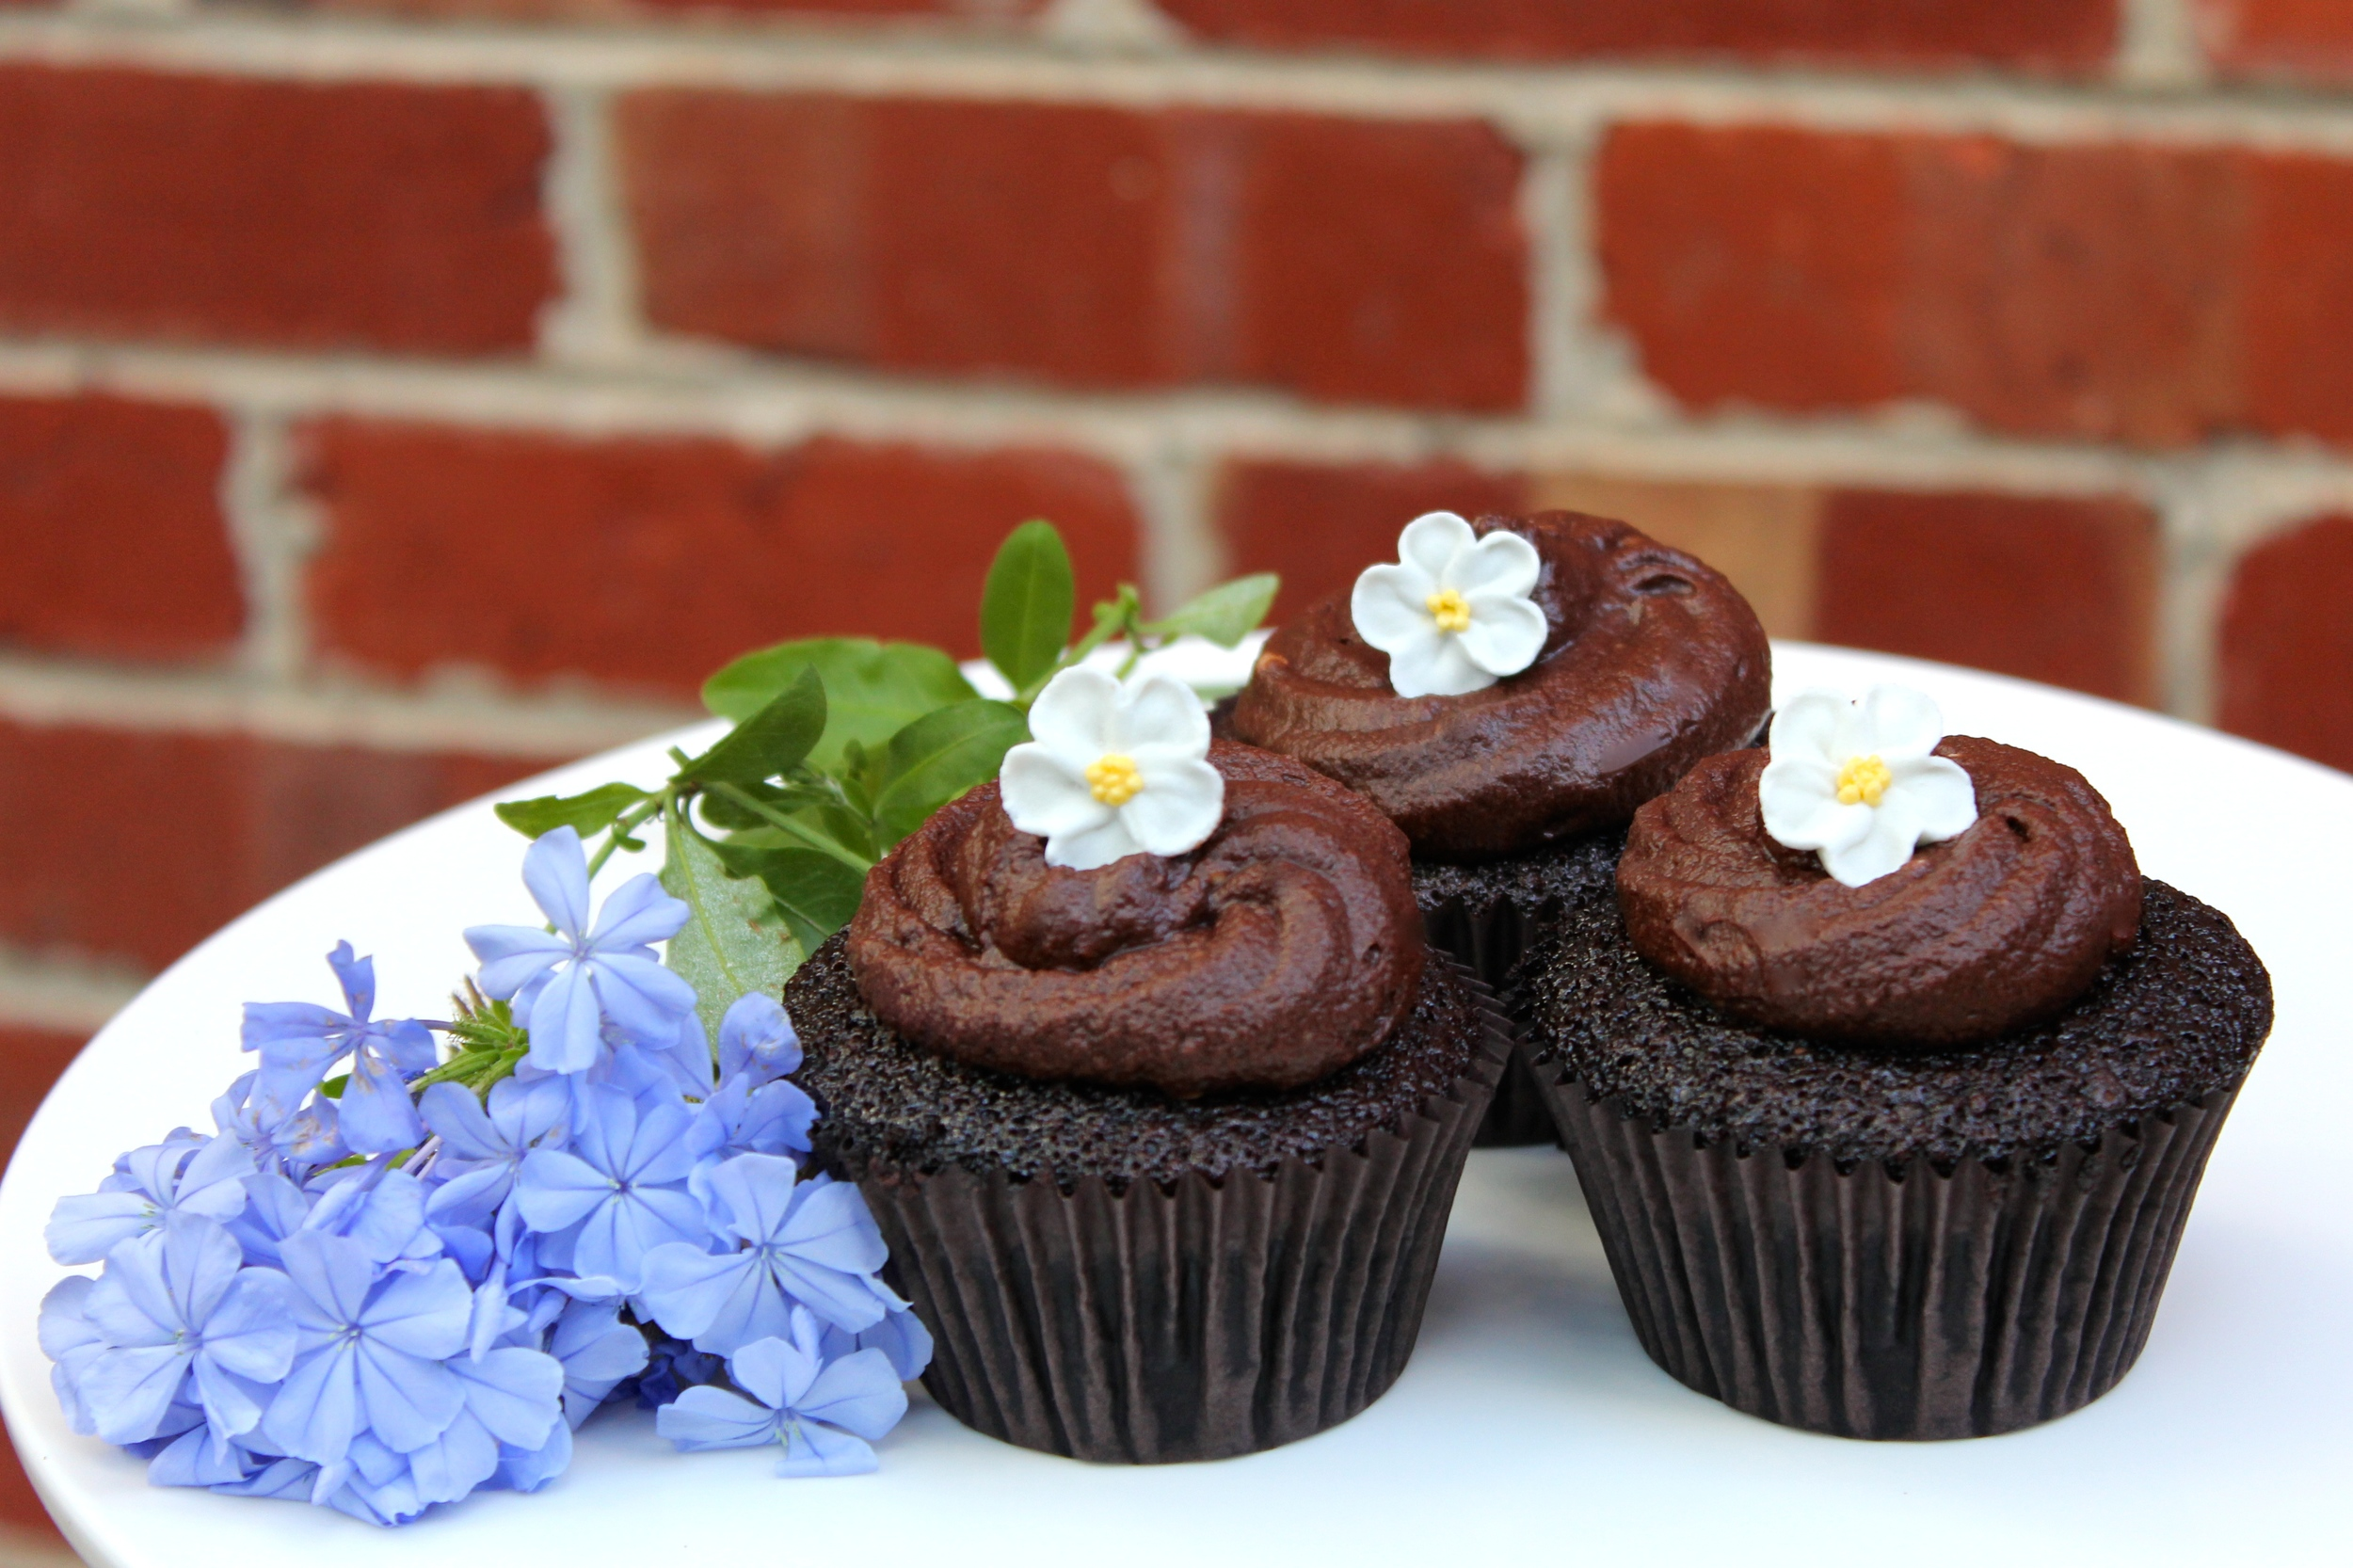 Chocolate Cupcakes with Chocolate Buttercream icing